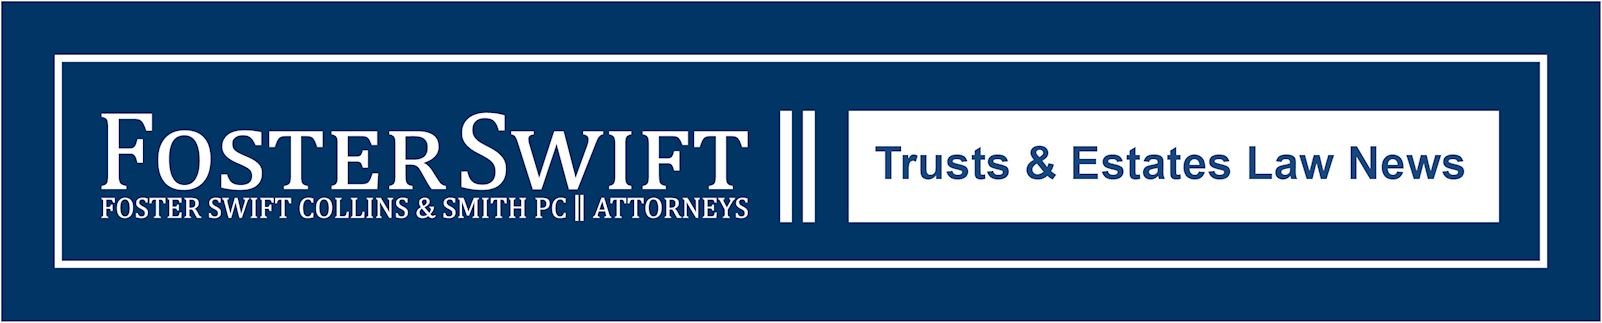 Trusts & Estates Law News